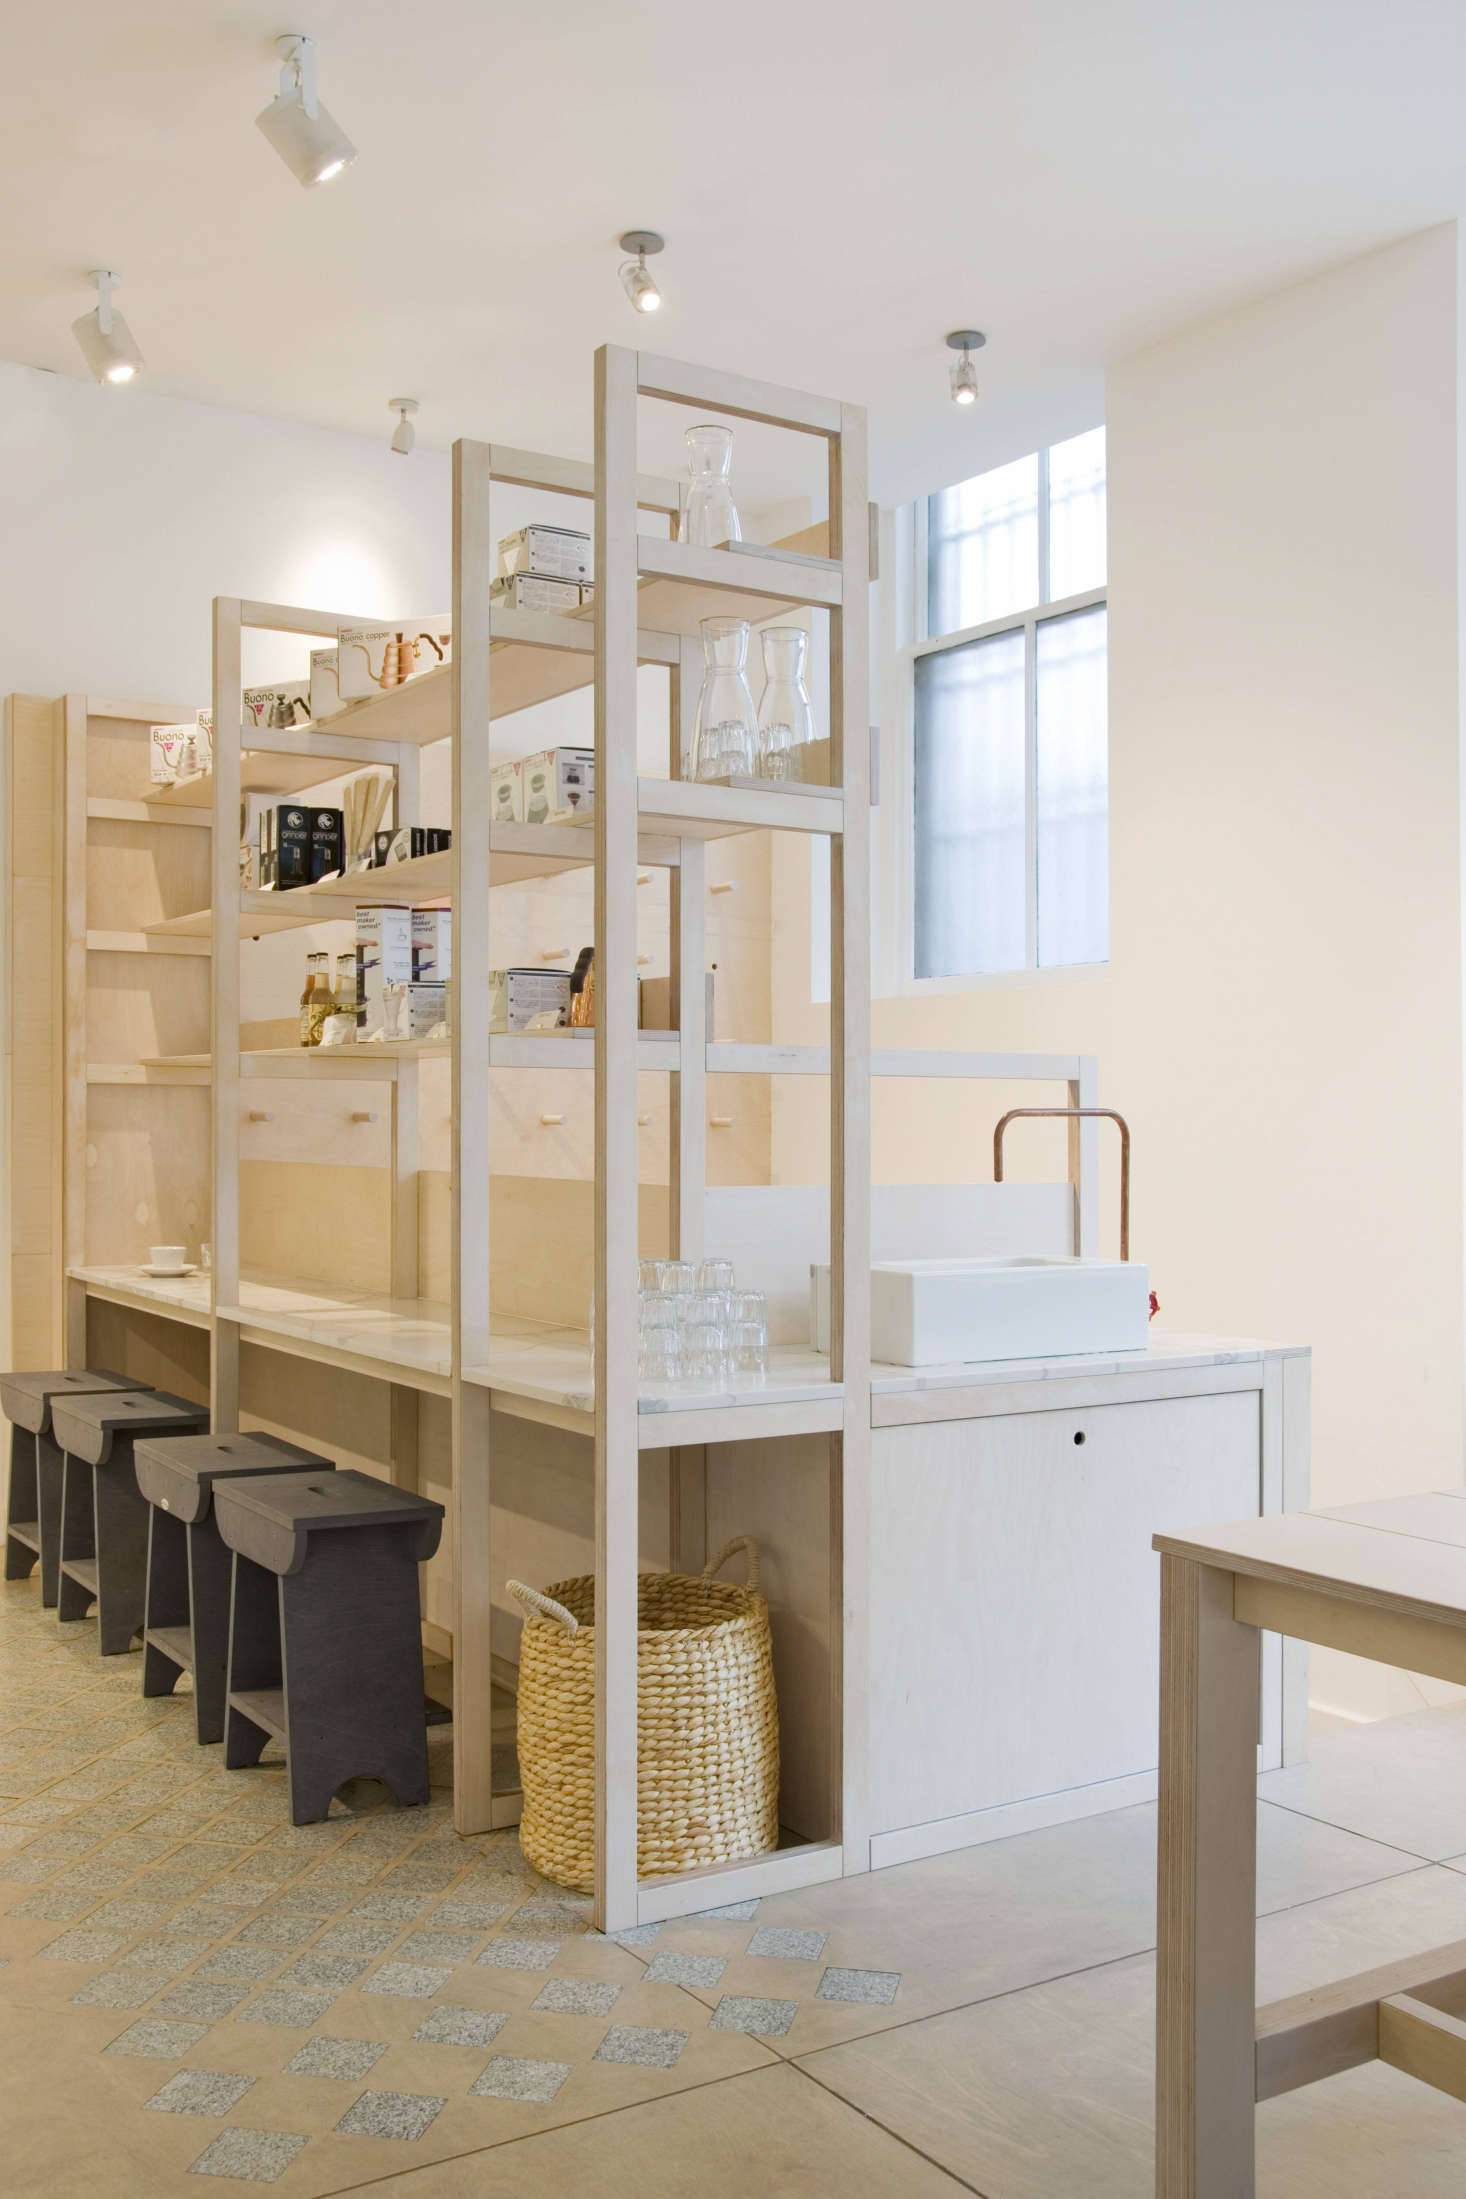 A two-in-one small space idea: When set at the right height, the bottom portion of shelving can serve as a low counter or table, as it does here. Pair with low stools for below-storage seating. (Also shown: the patterned &#8